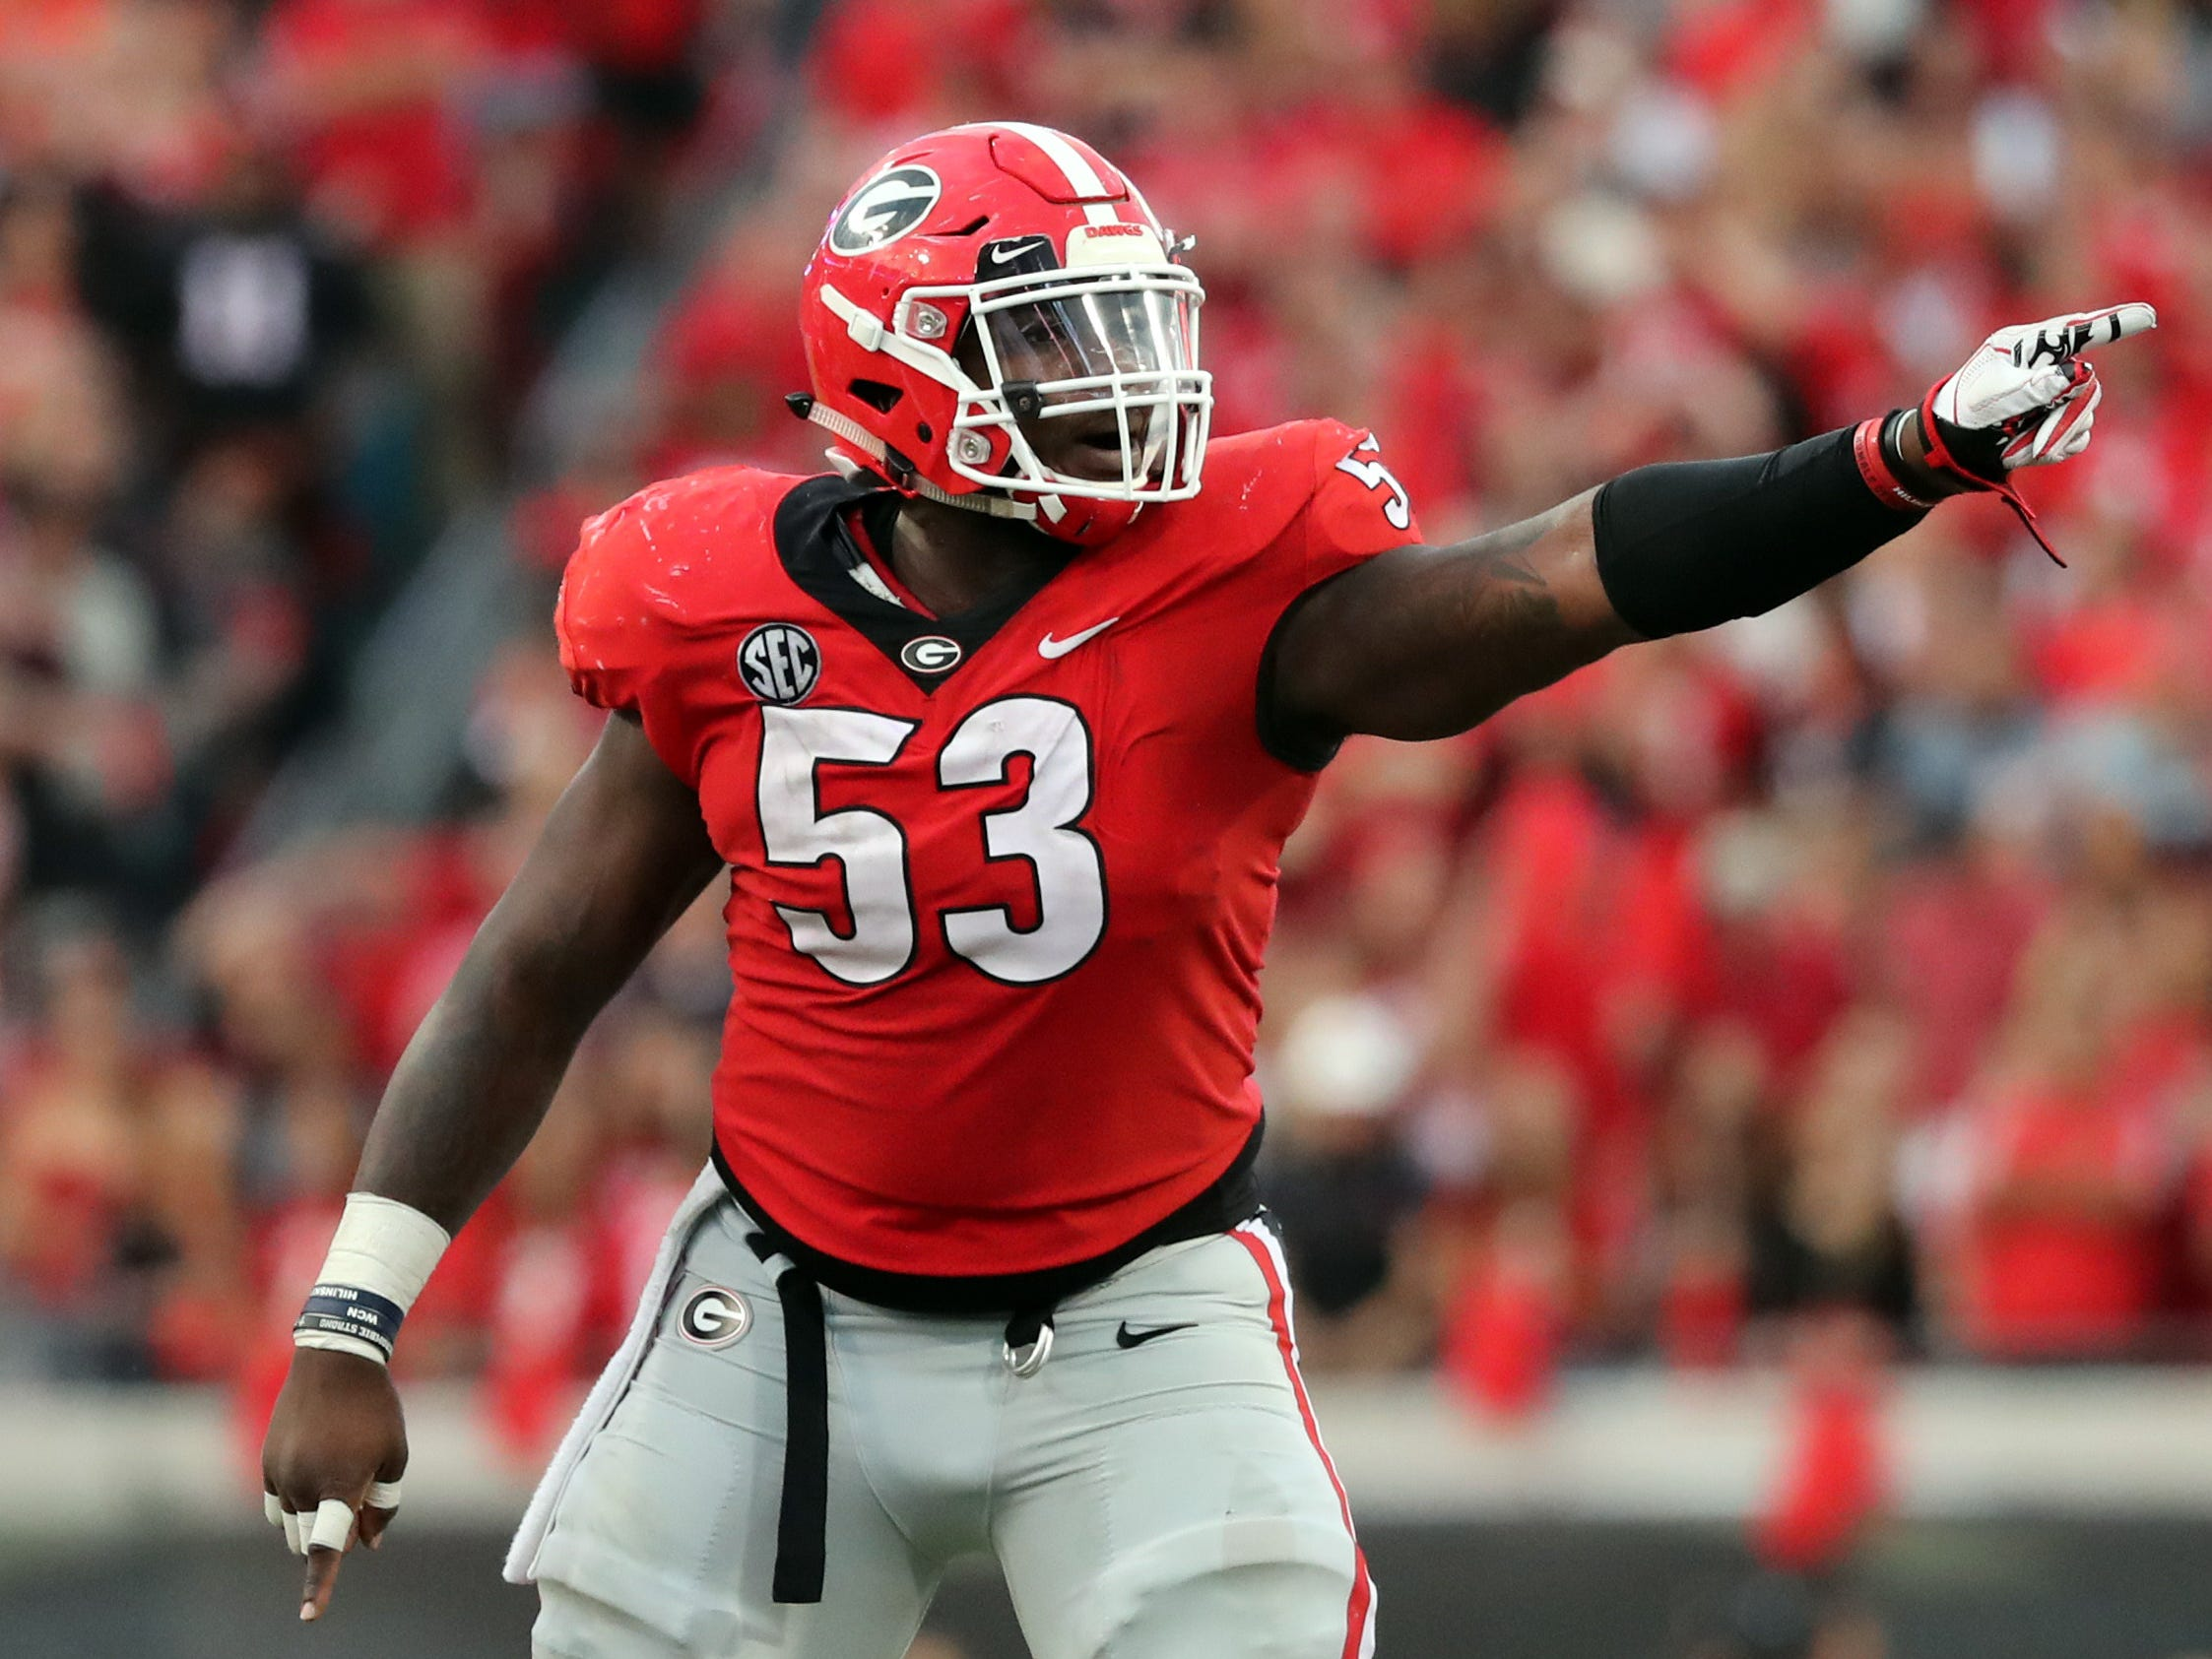 The Cardinals selected Georgia center Lamont Gaillard with their second pick in the sixth round of the NFL draft.